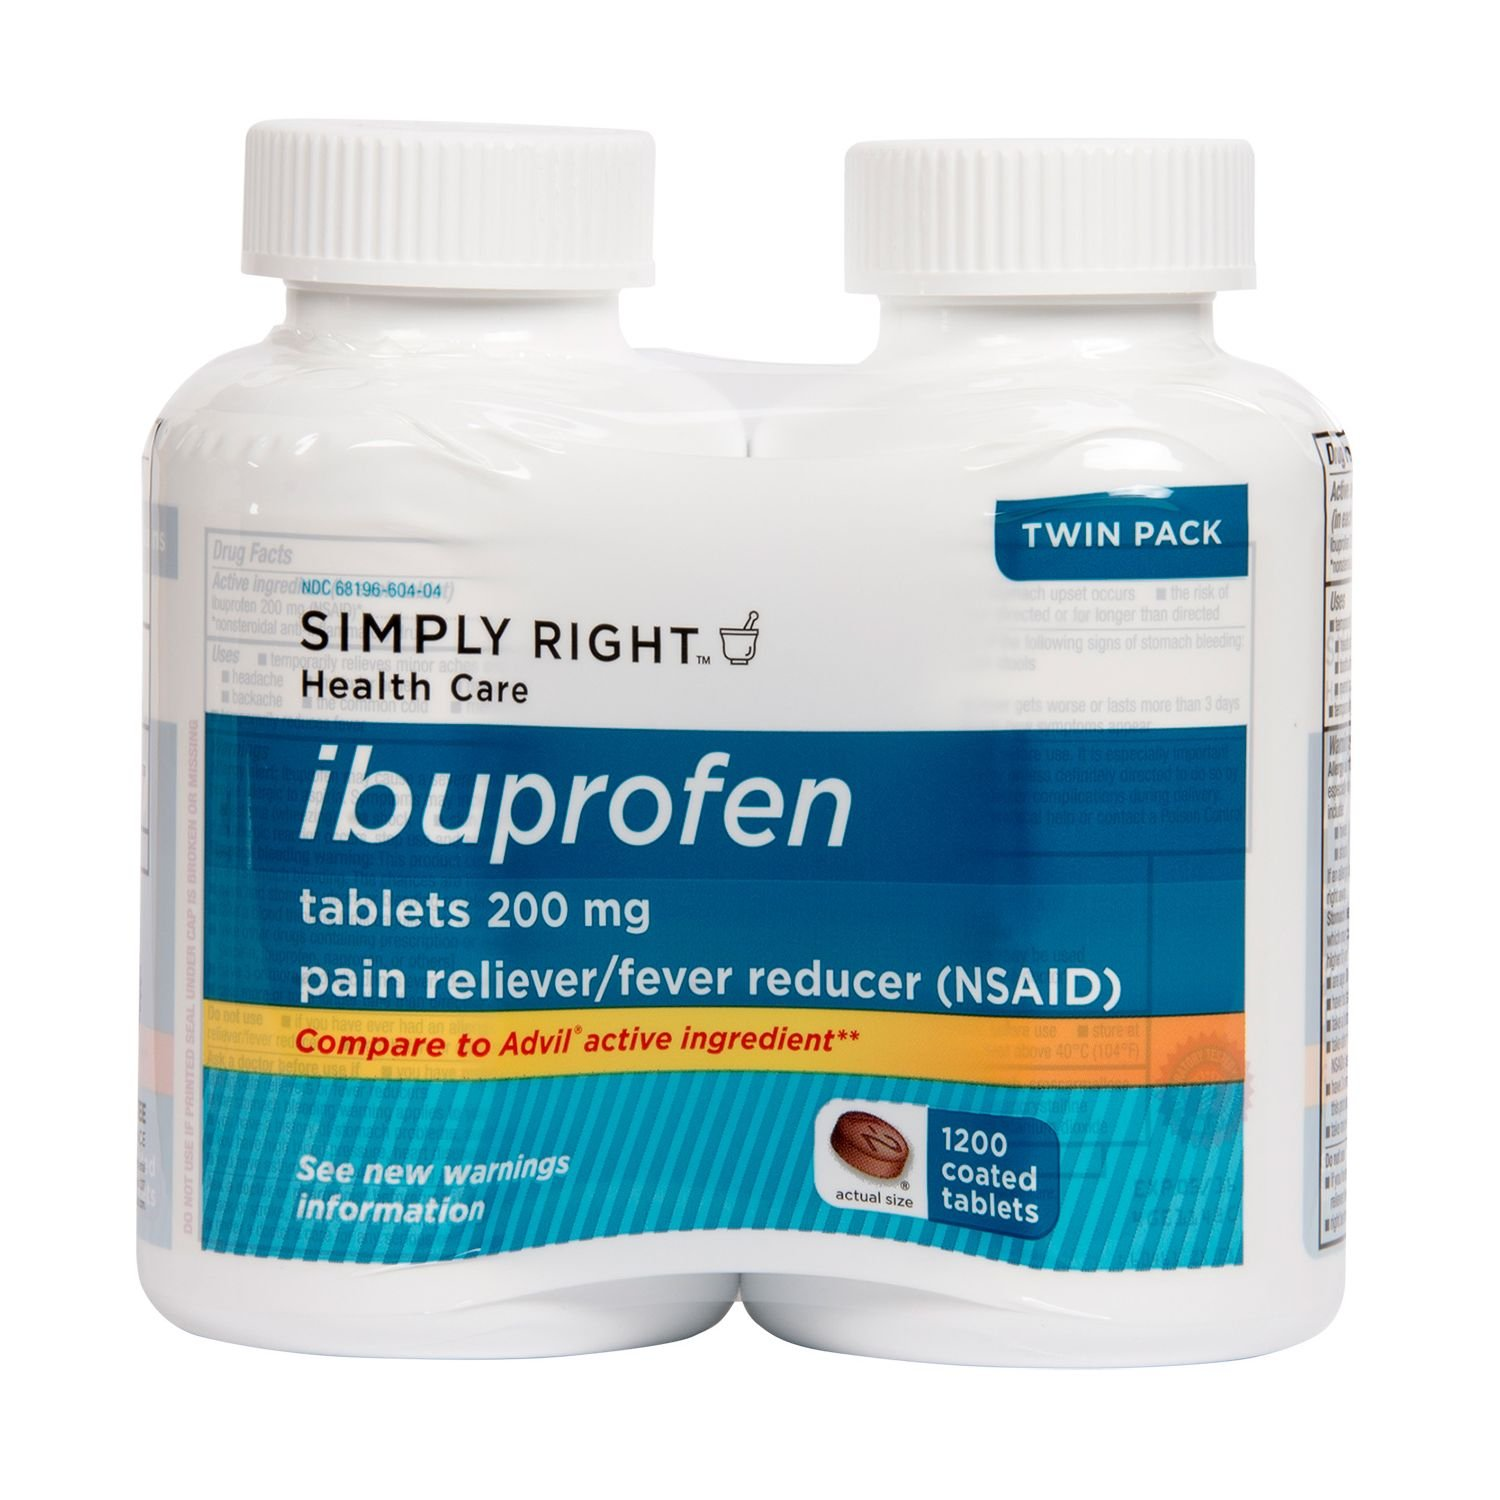 Member's Mark Ibuprofen Tablets, 200 mg (600 ct., 2 pk.) Total 1200 Tablets